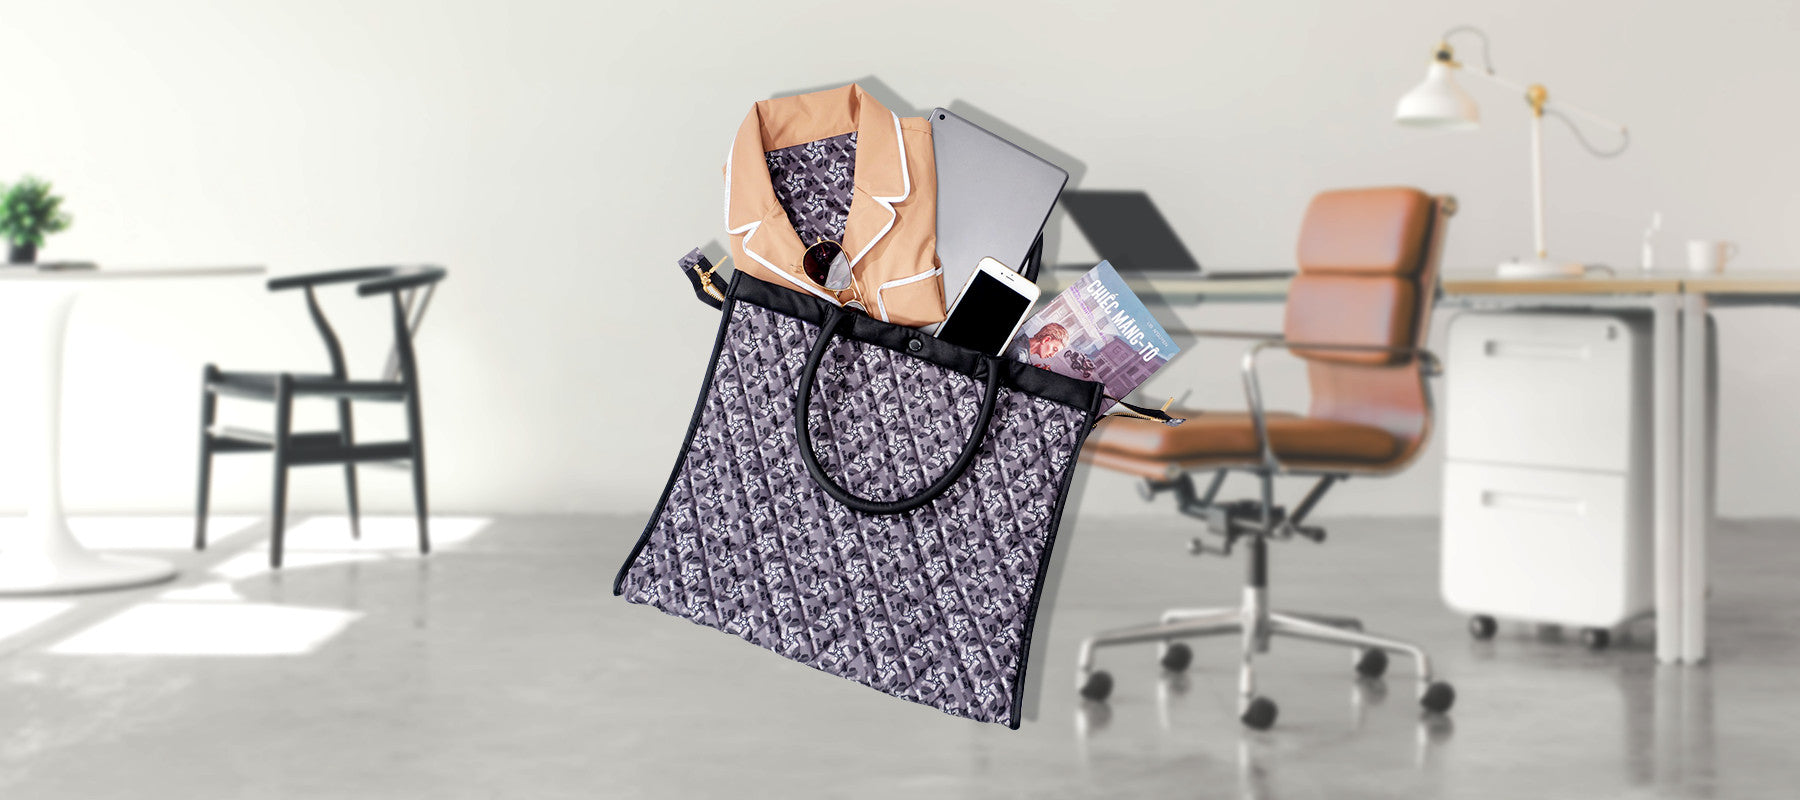 Max sax - tote bag for working day